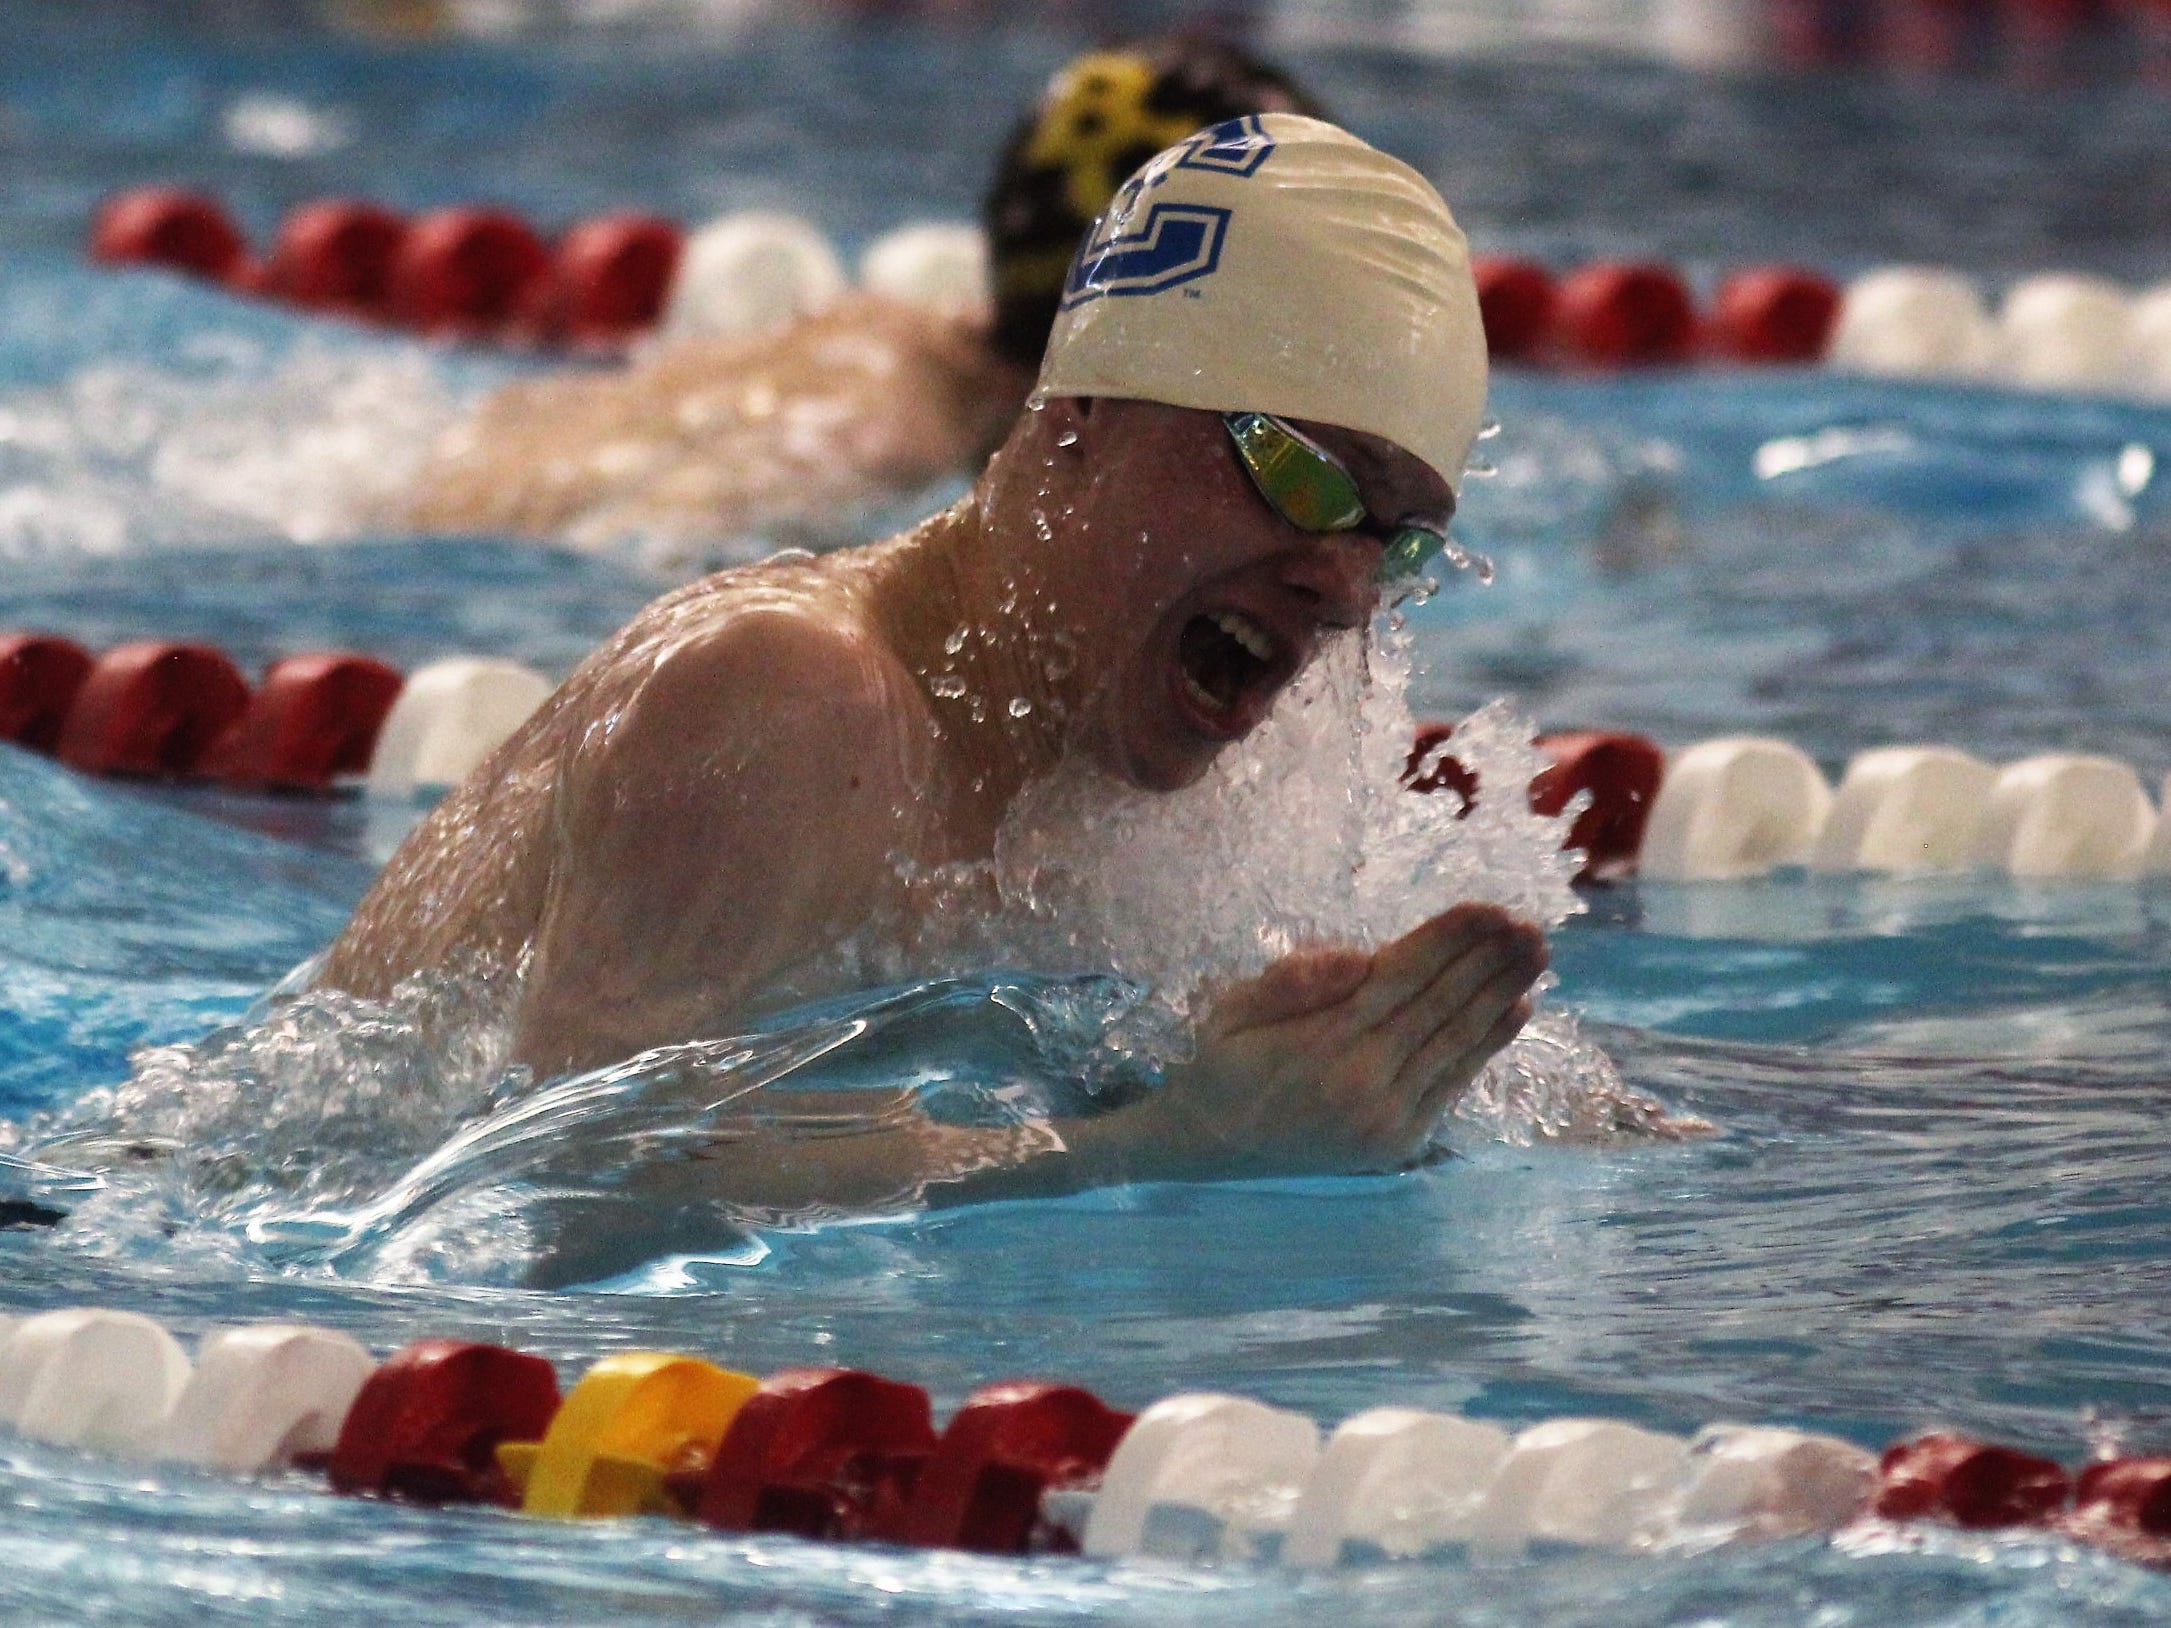 CovCath sophomore Patrick Lester swims the 200 IM during the KHSAA state boys swimming and diving championship Feb. 22, 2019 at the University of Louisville.